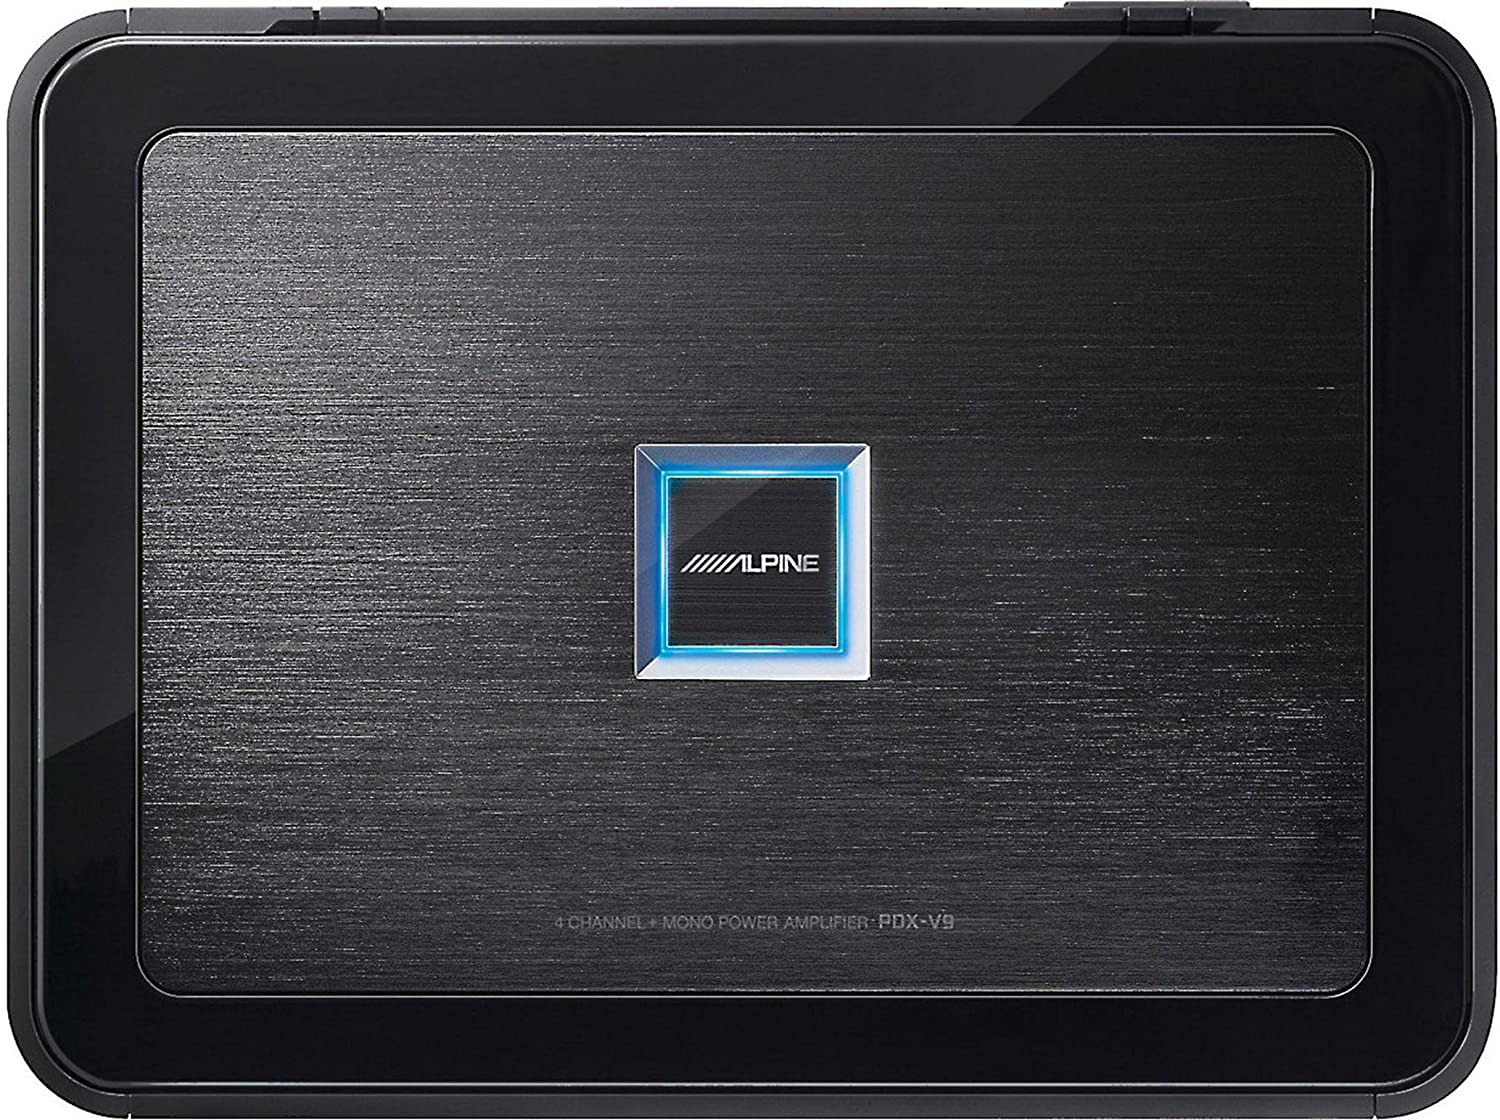 Alpine PDX V9 5 Channel Amplifier